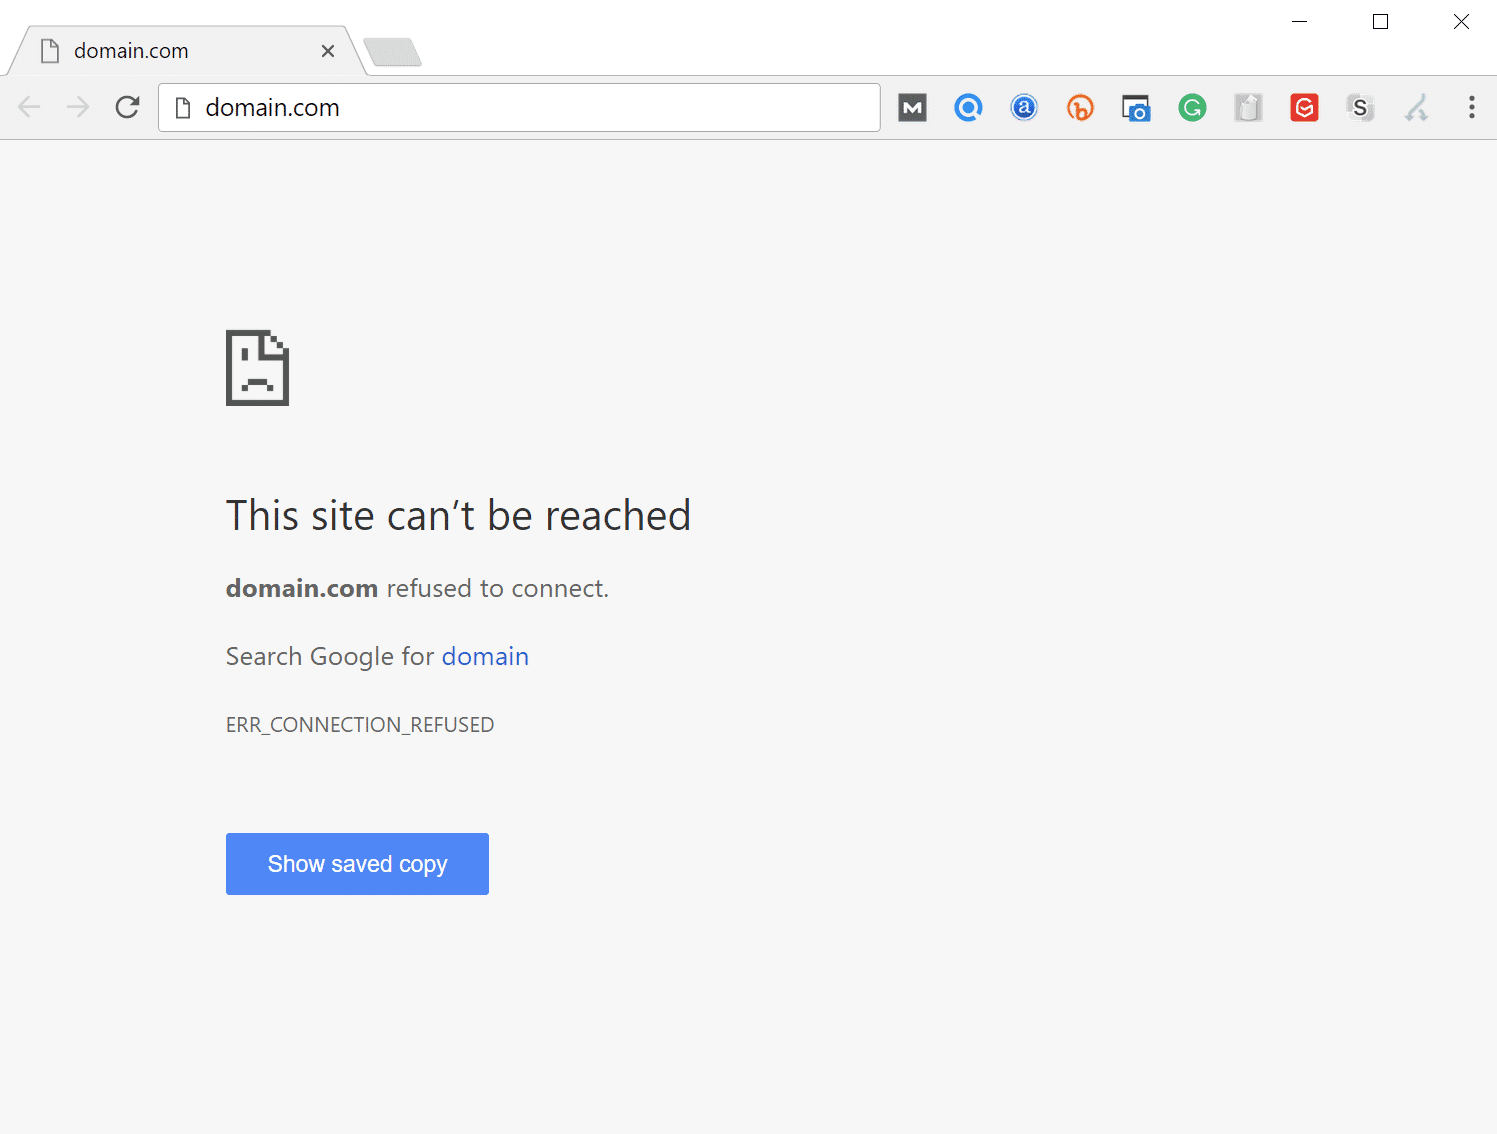 How to Fix the ERR_CONNECTION_REFUSED Error in Chrome (9 Tips)